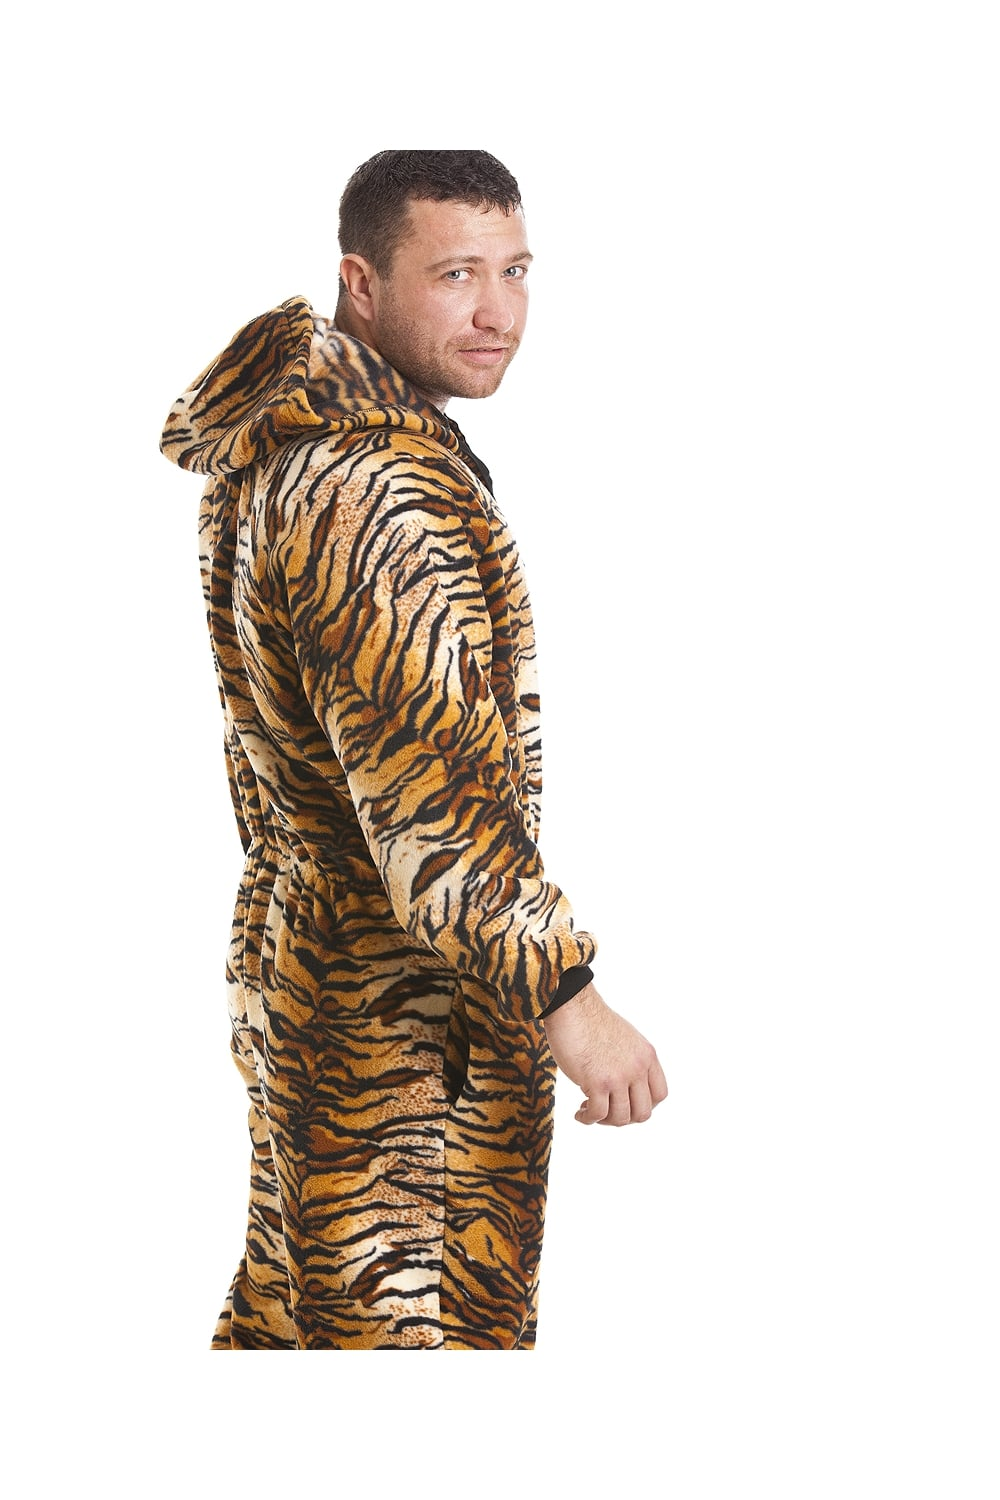 Camille Mens Luxury Gold And Brown Tiger Print Hooded All In One Onesie  Pyjama cd937bbd9